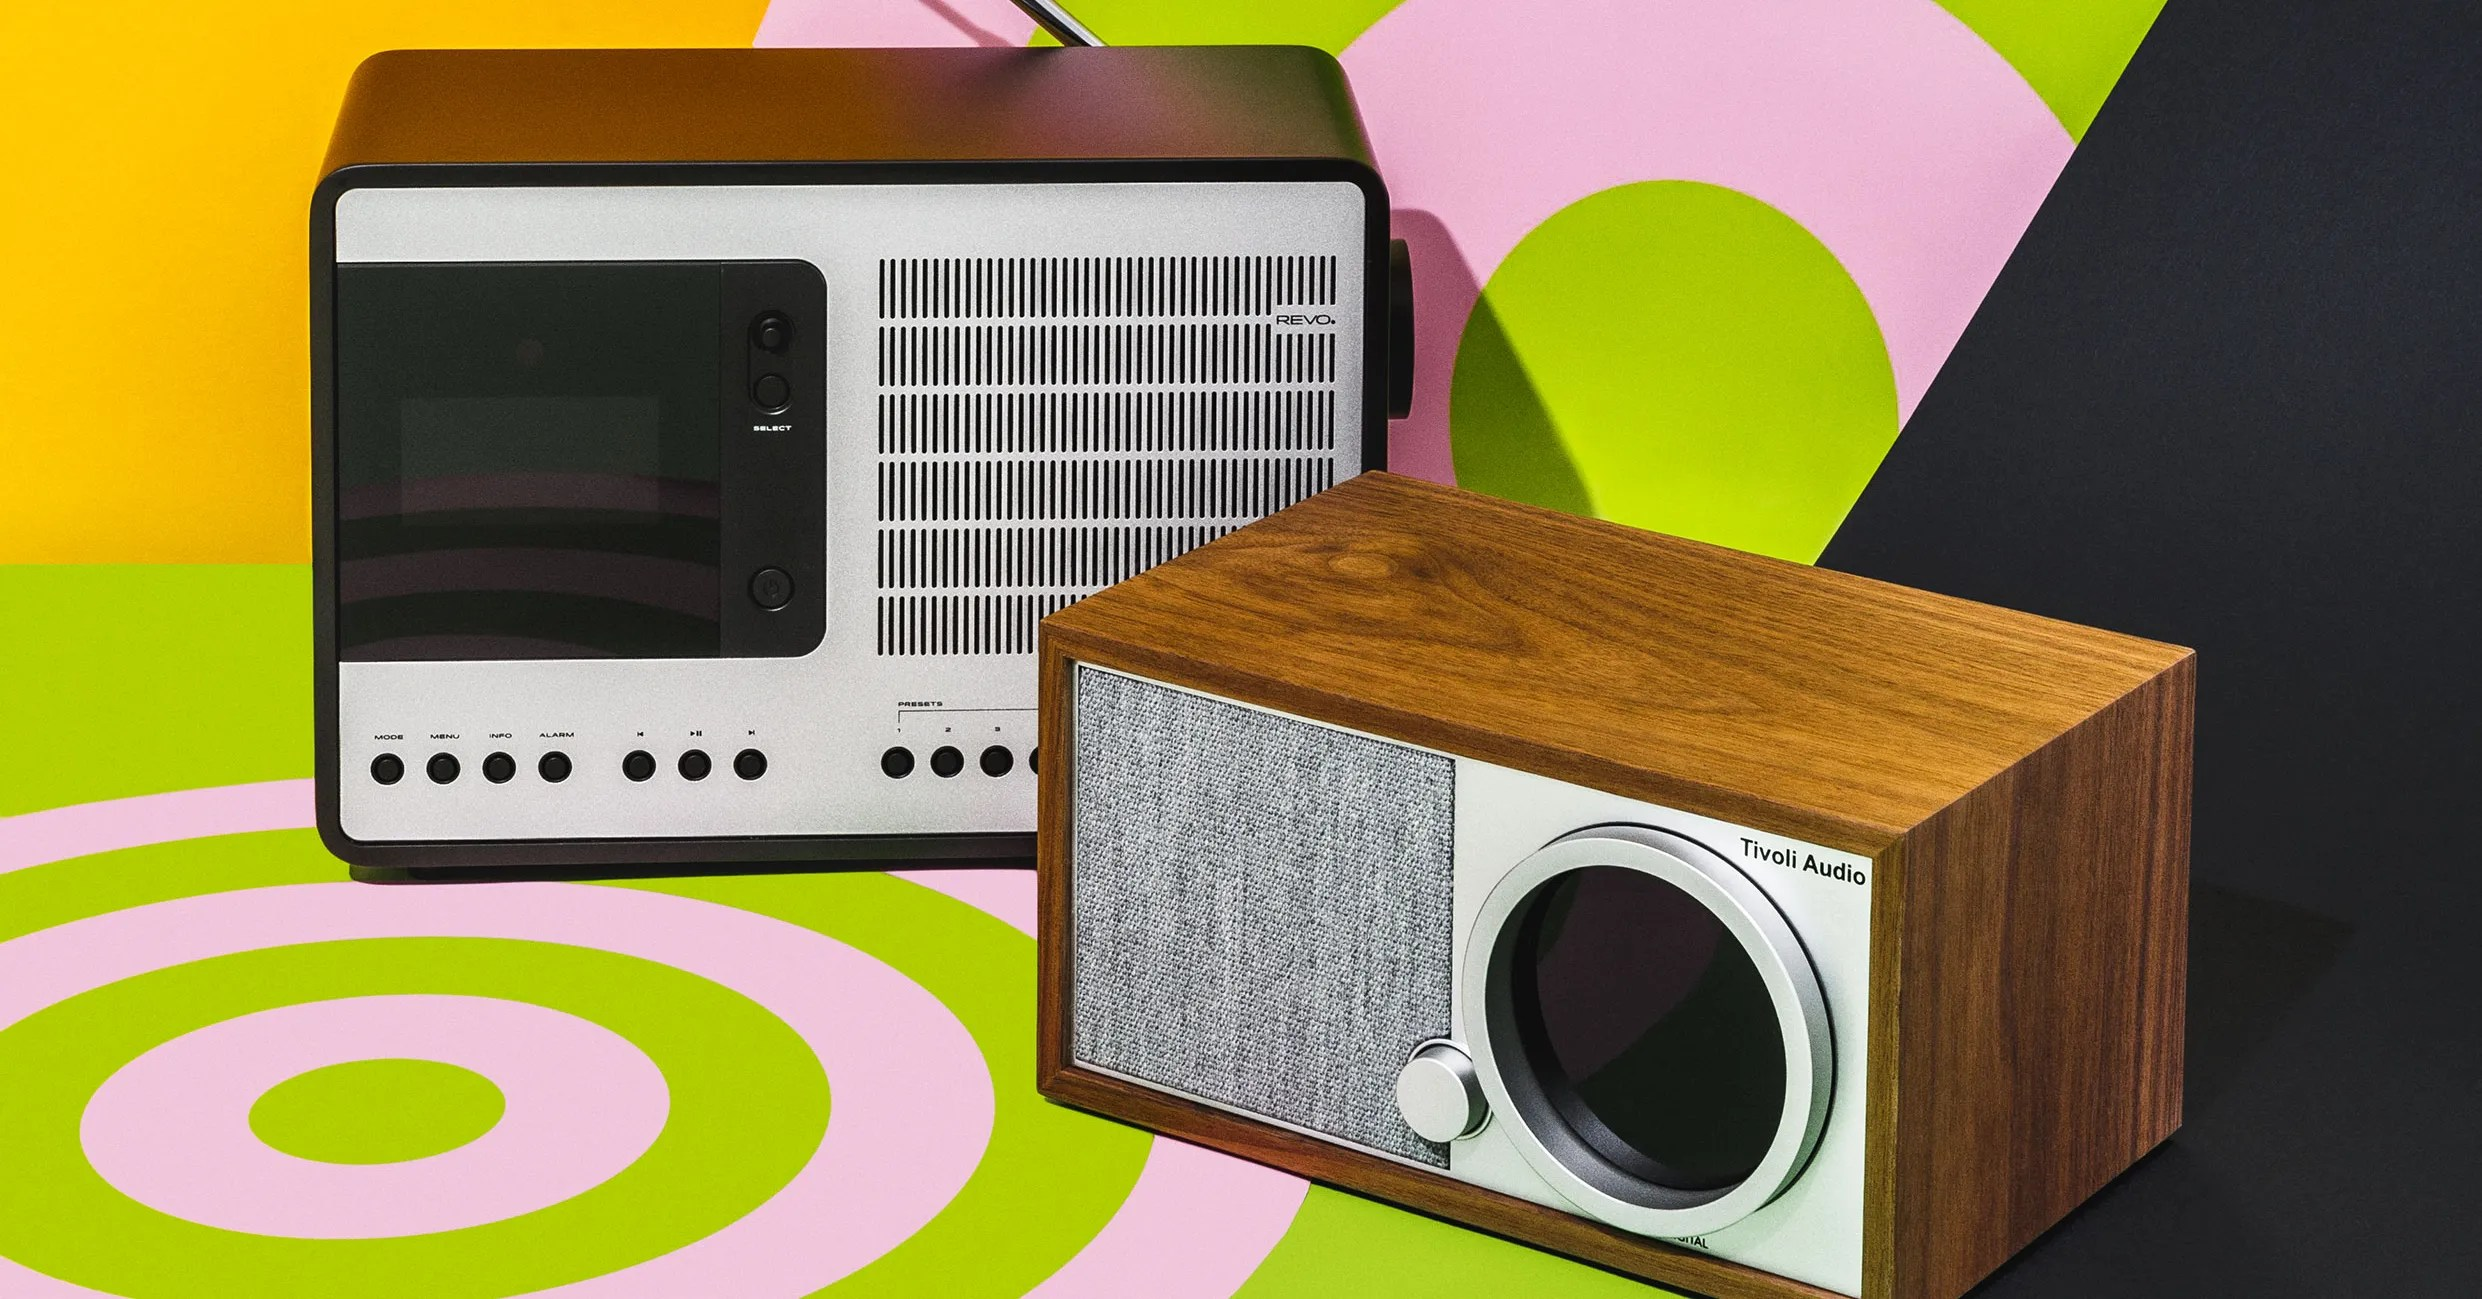 Tivoli Radio Sale Stream Your Favorite Tunes With These Connected Radios Revo